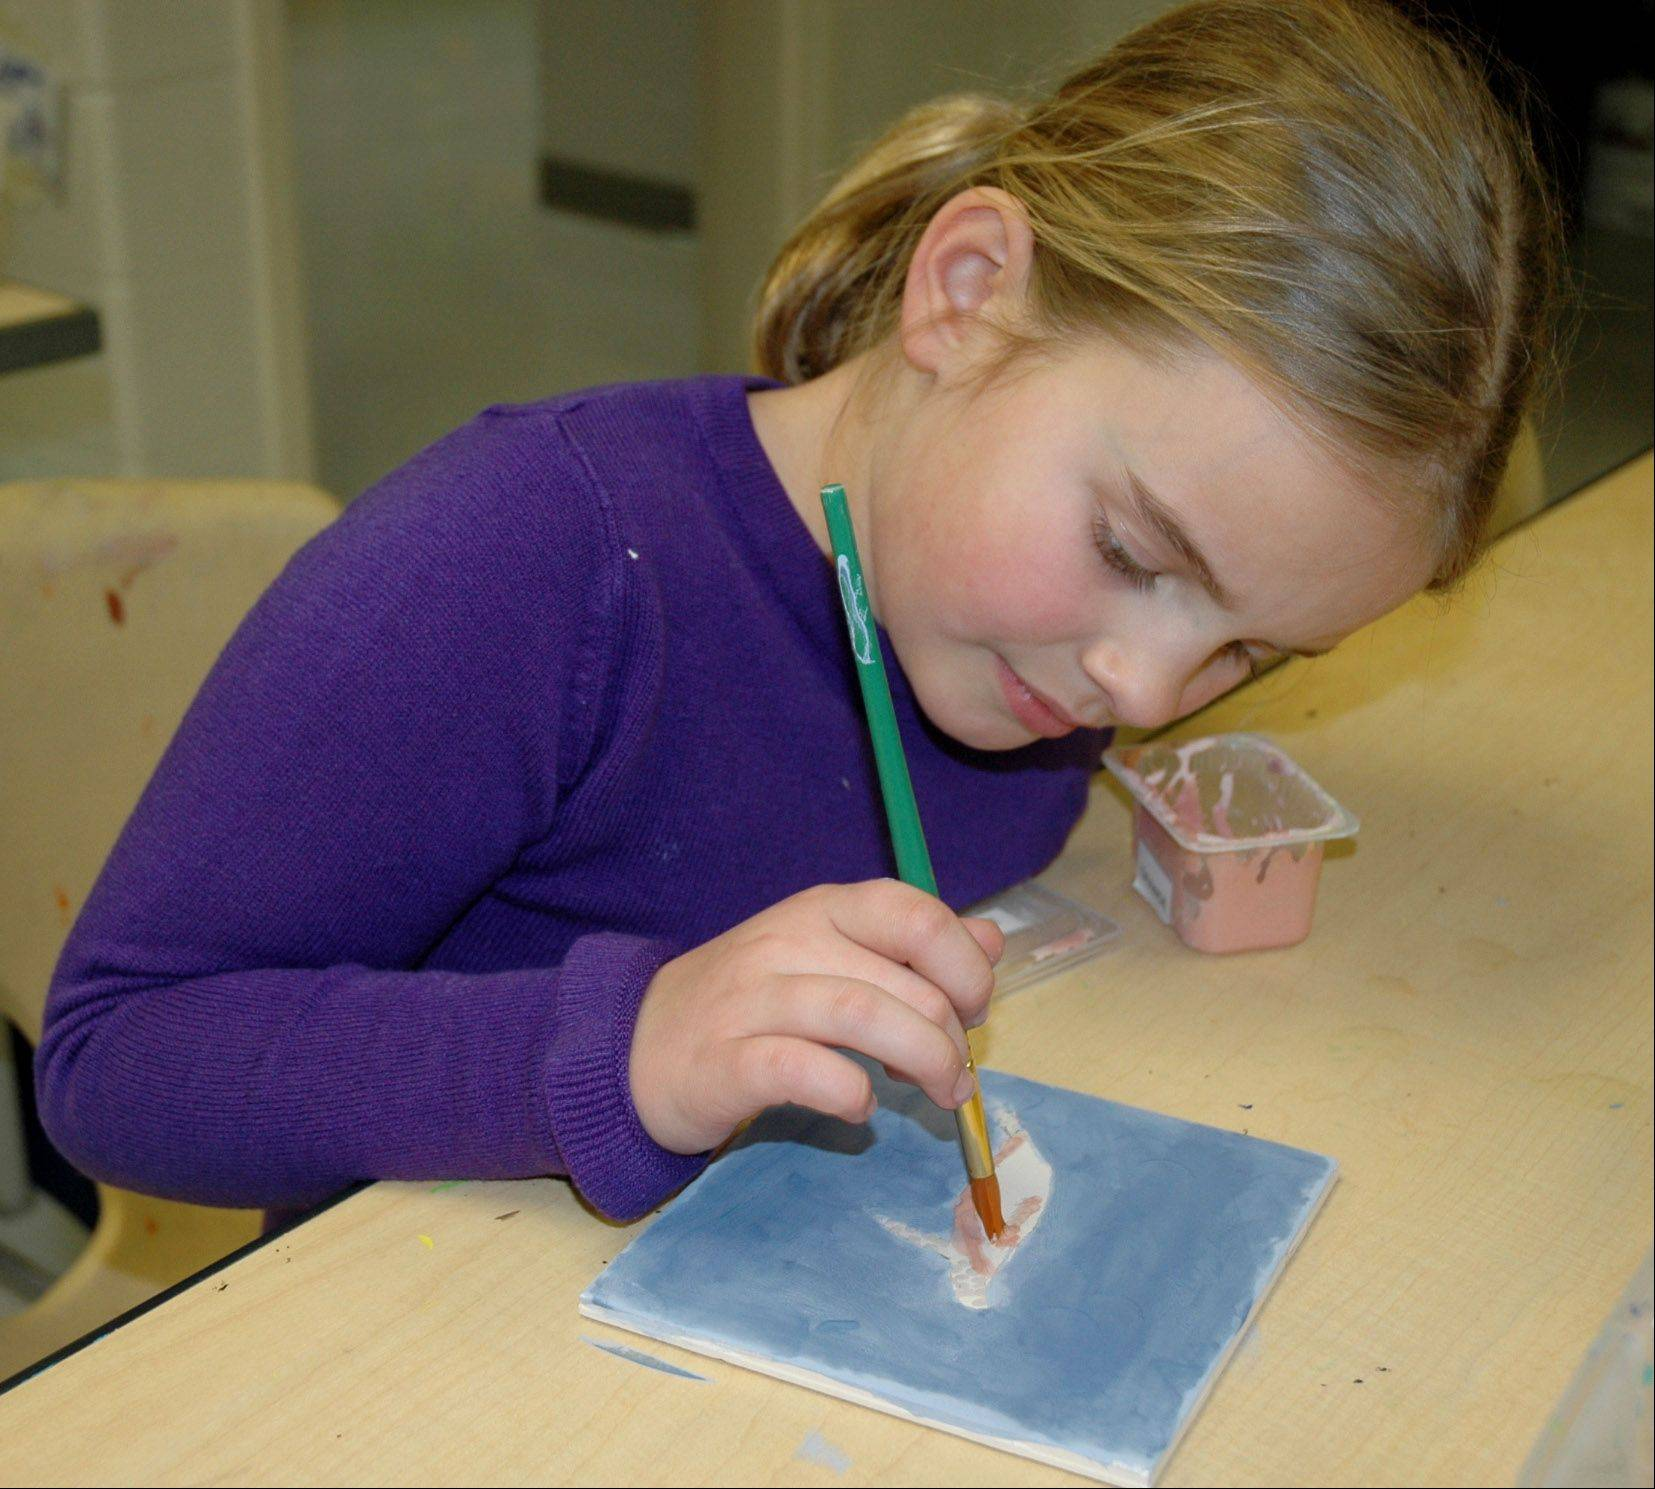 Third-grader Mary Zipfel paints tiles supplied by the Fremont Education Foundation. The tiles will eventually be applied to the wall behind the school's bathroom sinks.